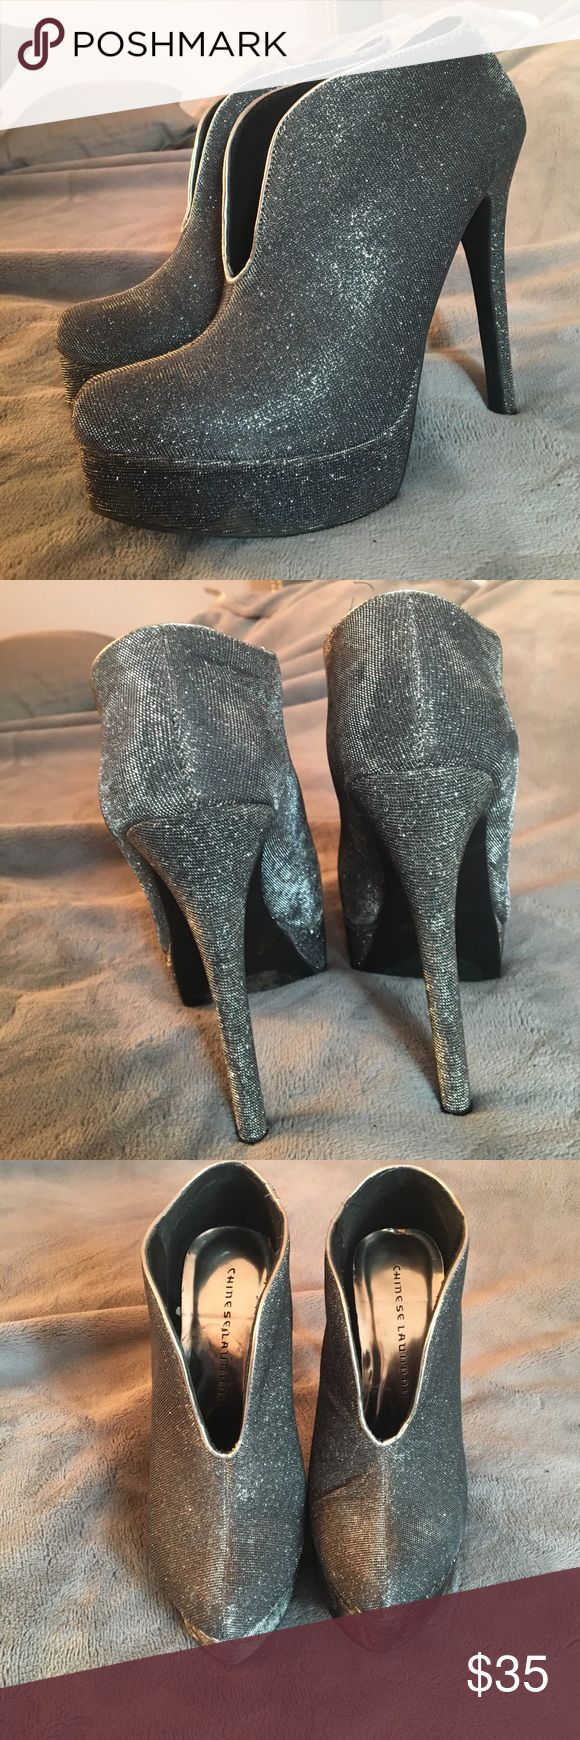 Chinese Laundry sparkly booties! These grey sparkly Chinese Laundry booties are to die for. They are perfect for a night out and look great paired with a dress or bodysuit. Only worn a couple times and in great condition. Size 7.5. Offers are welcome :) Chinese Laundry Shoes Heeled Boots